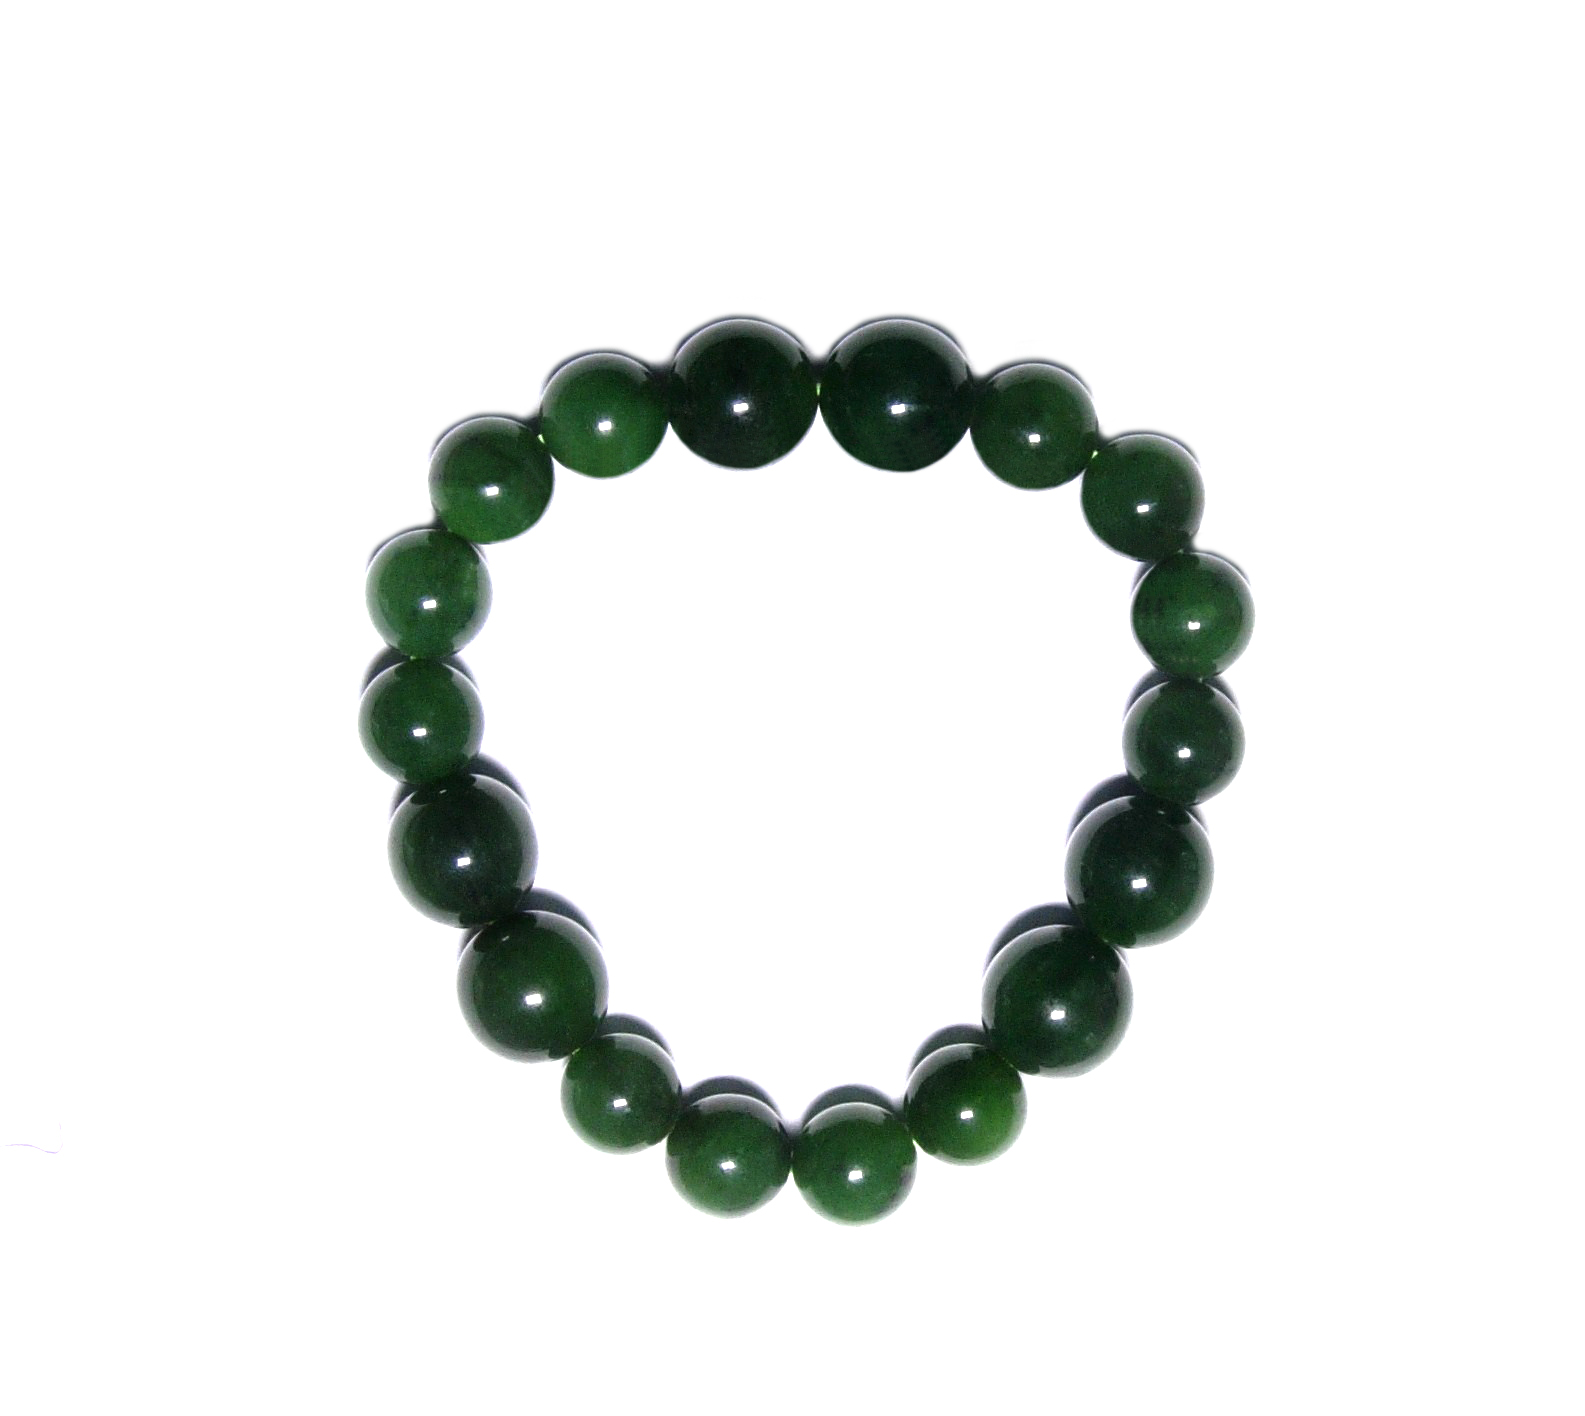 turquoise gift mdrv il for p fertility women fullxfull stone protection mm beads womens mens bracelet green bead